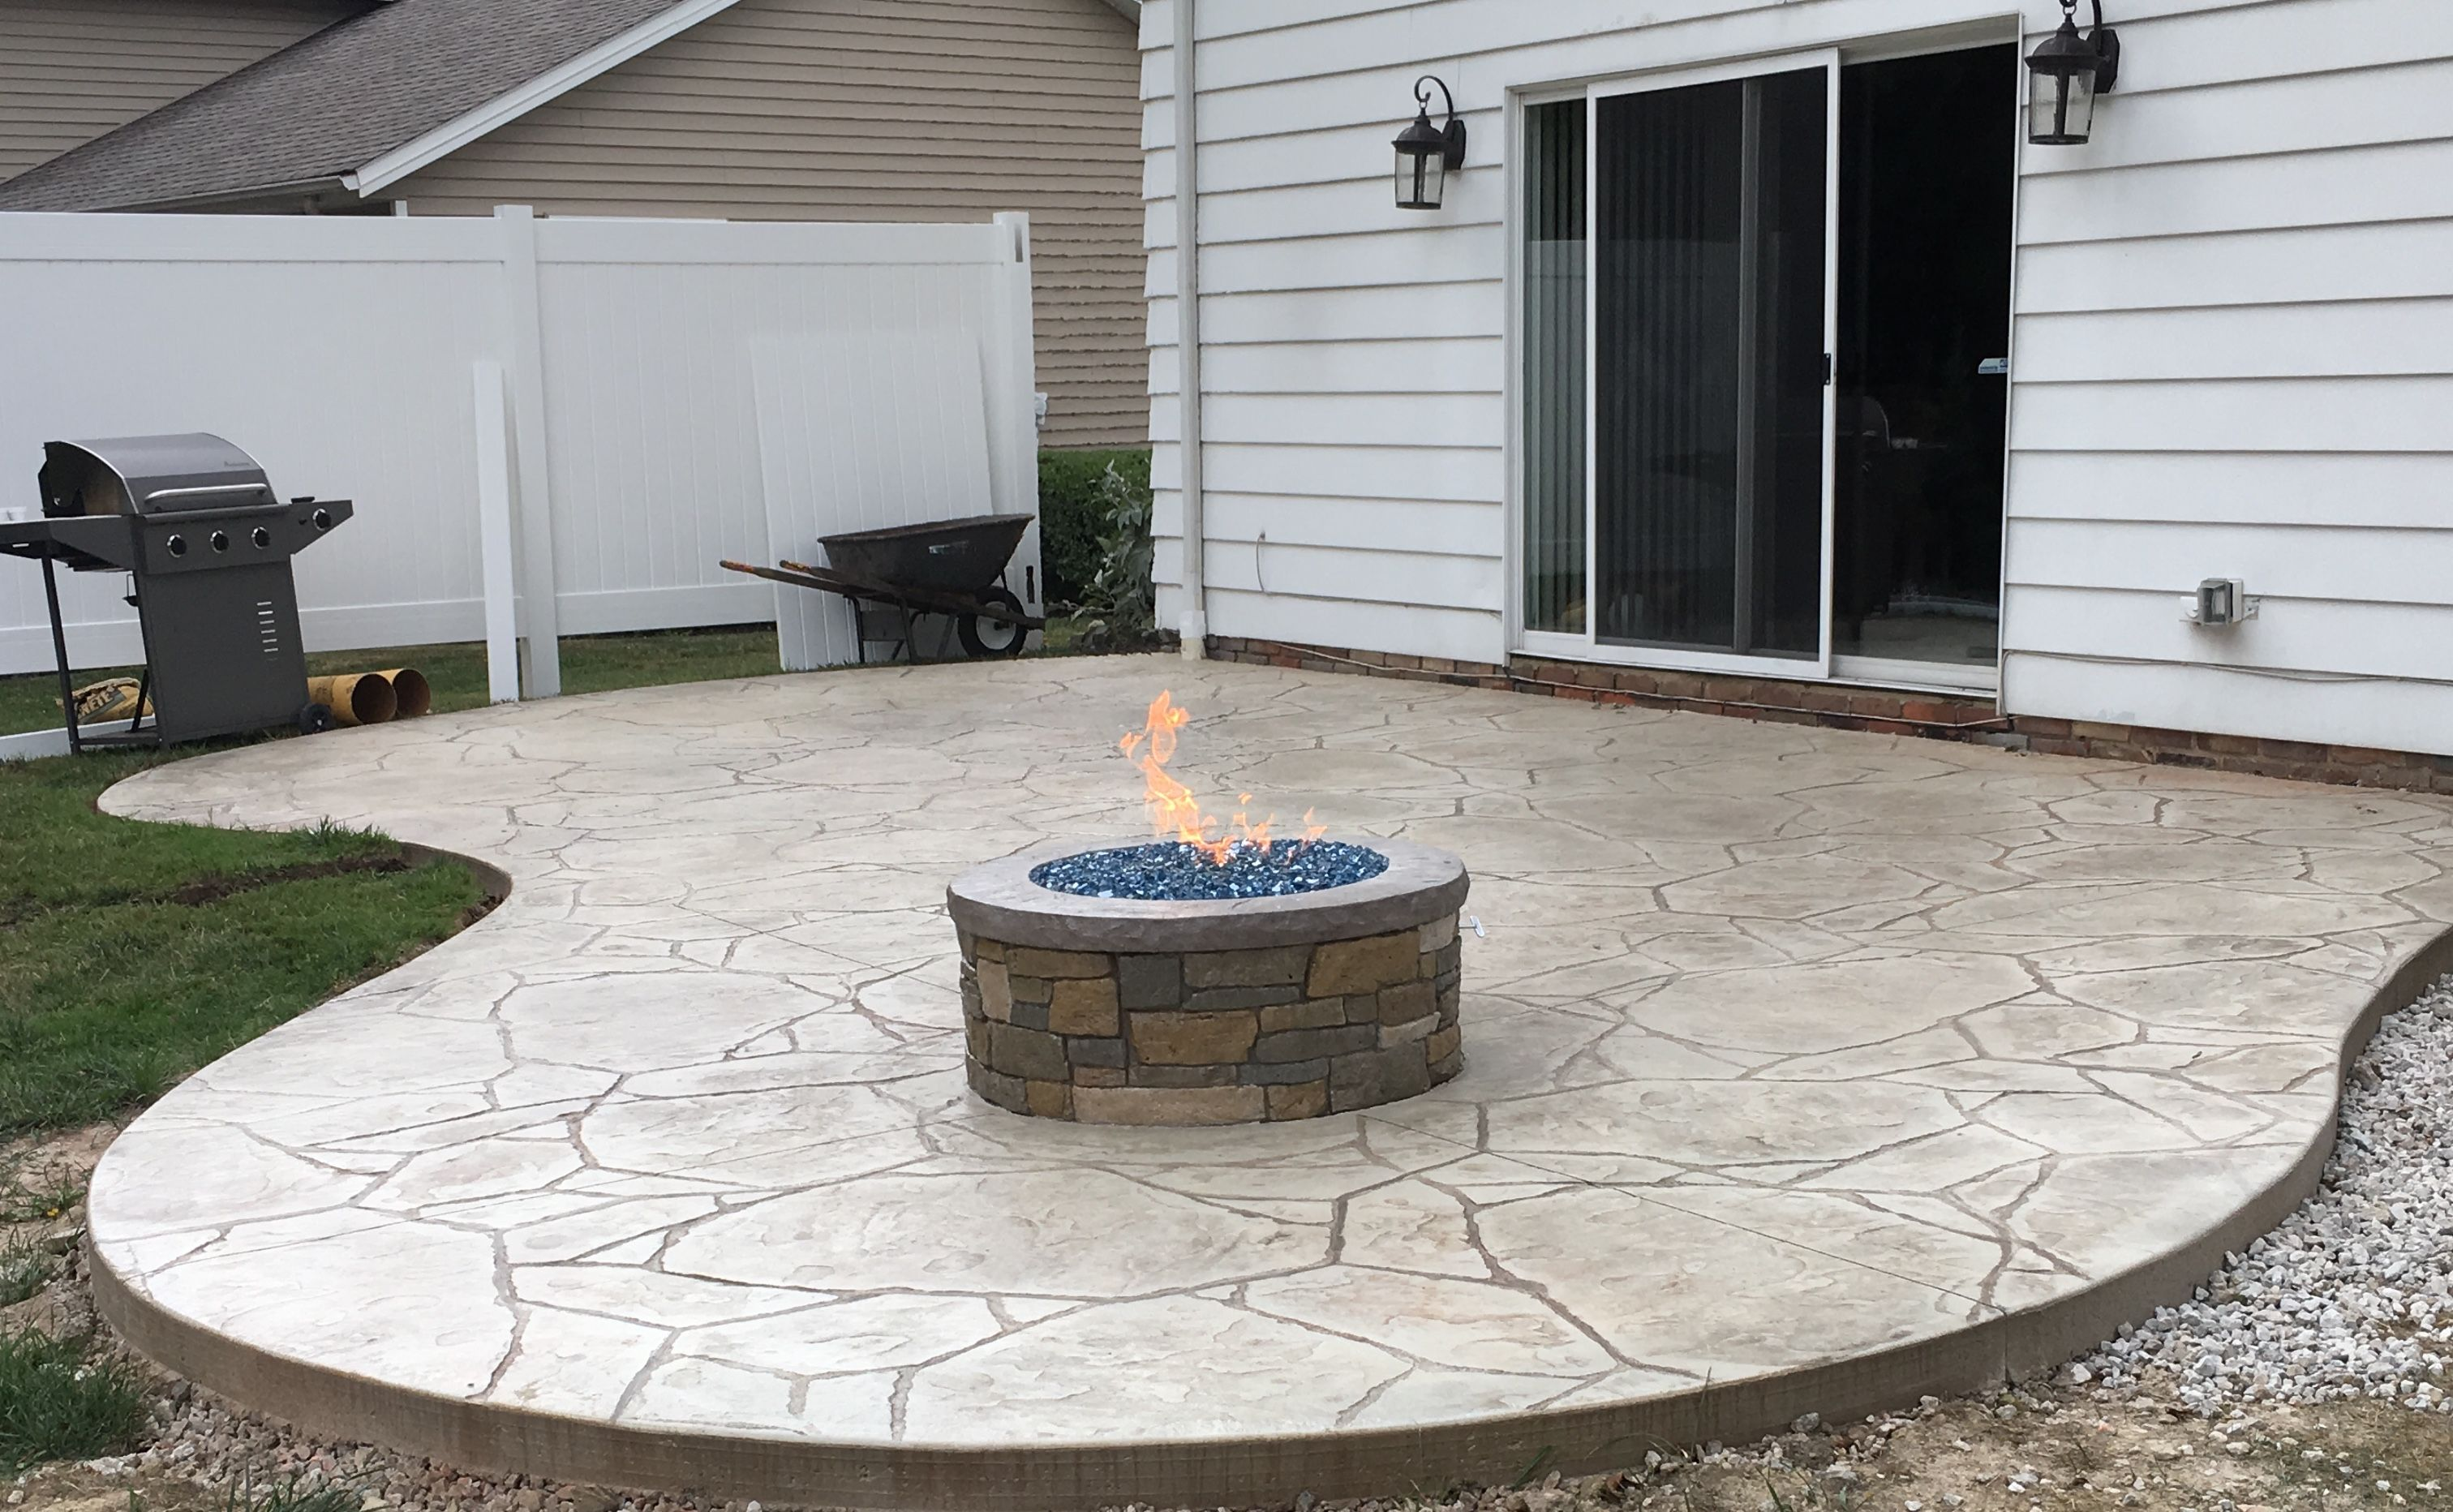 4adfdc5ff5c17dac65f3380e50f5a9c6 Top Result 50 Awesome Outdoor Natural Gas Fire Pit